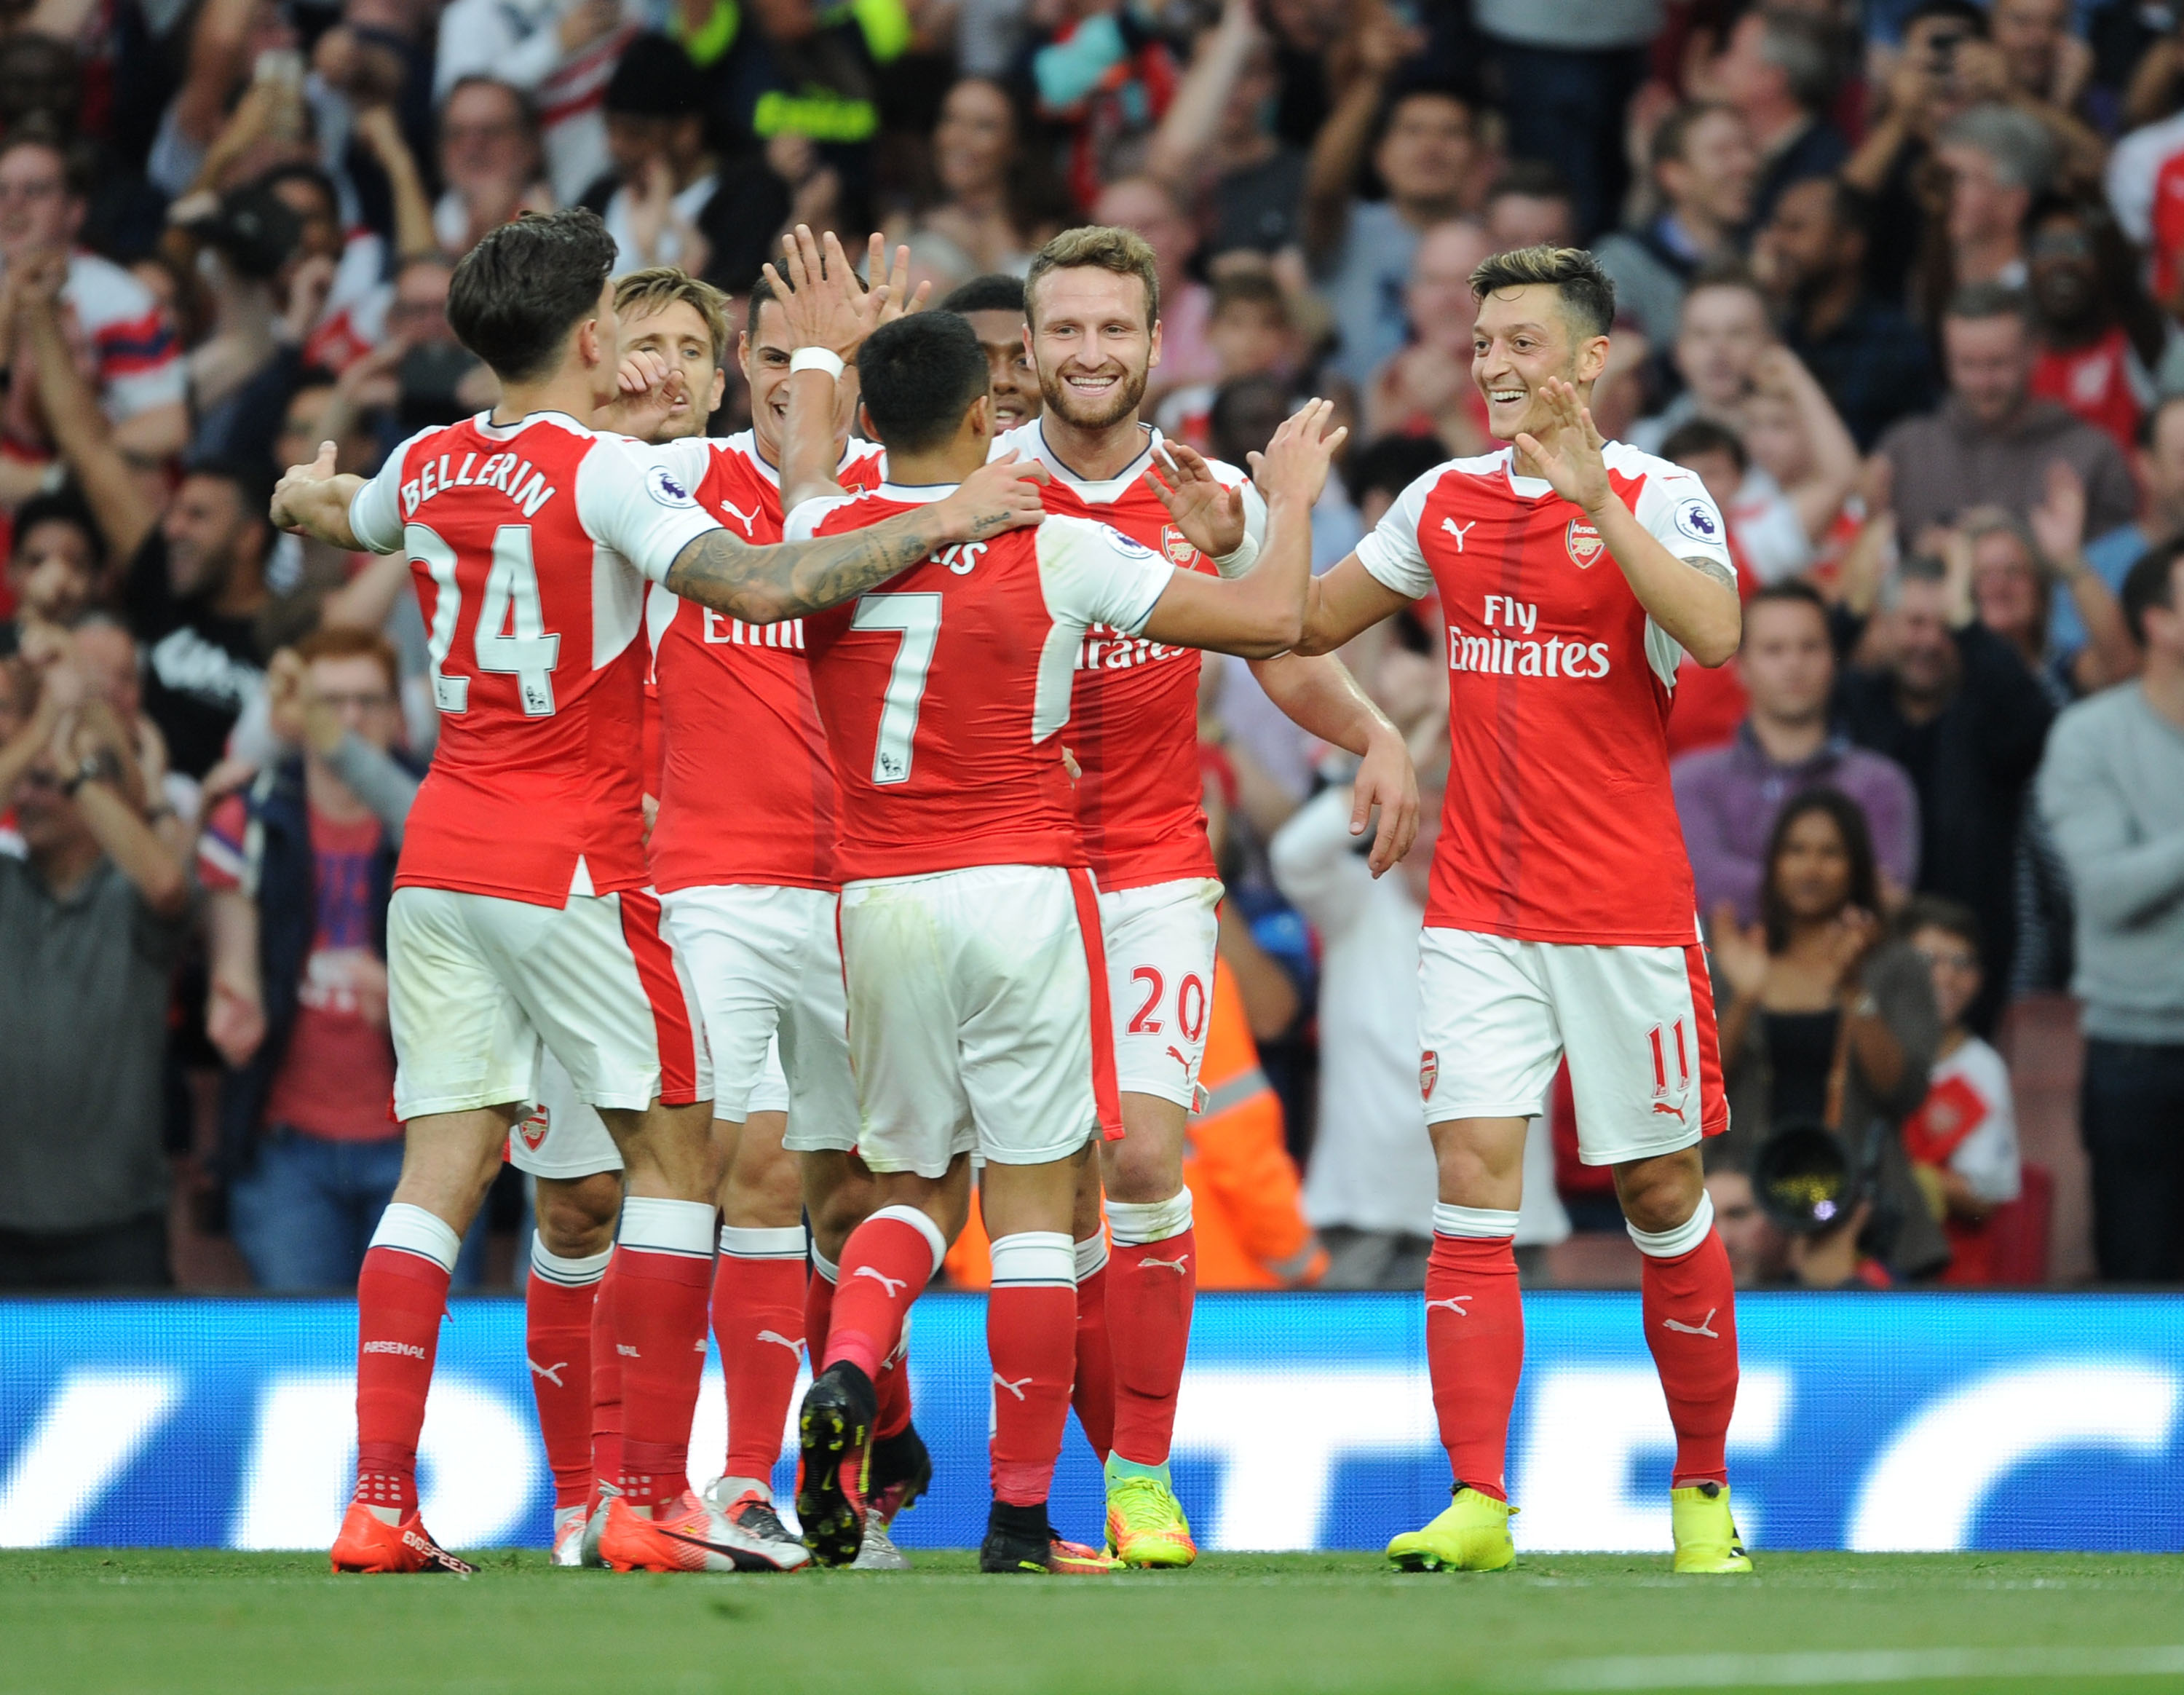 Arsenal v Basel Champions League: Date, kick-off time, TV channel and odds